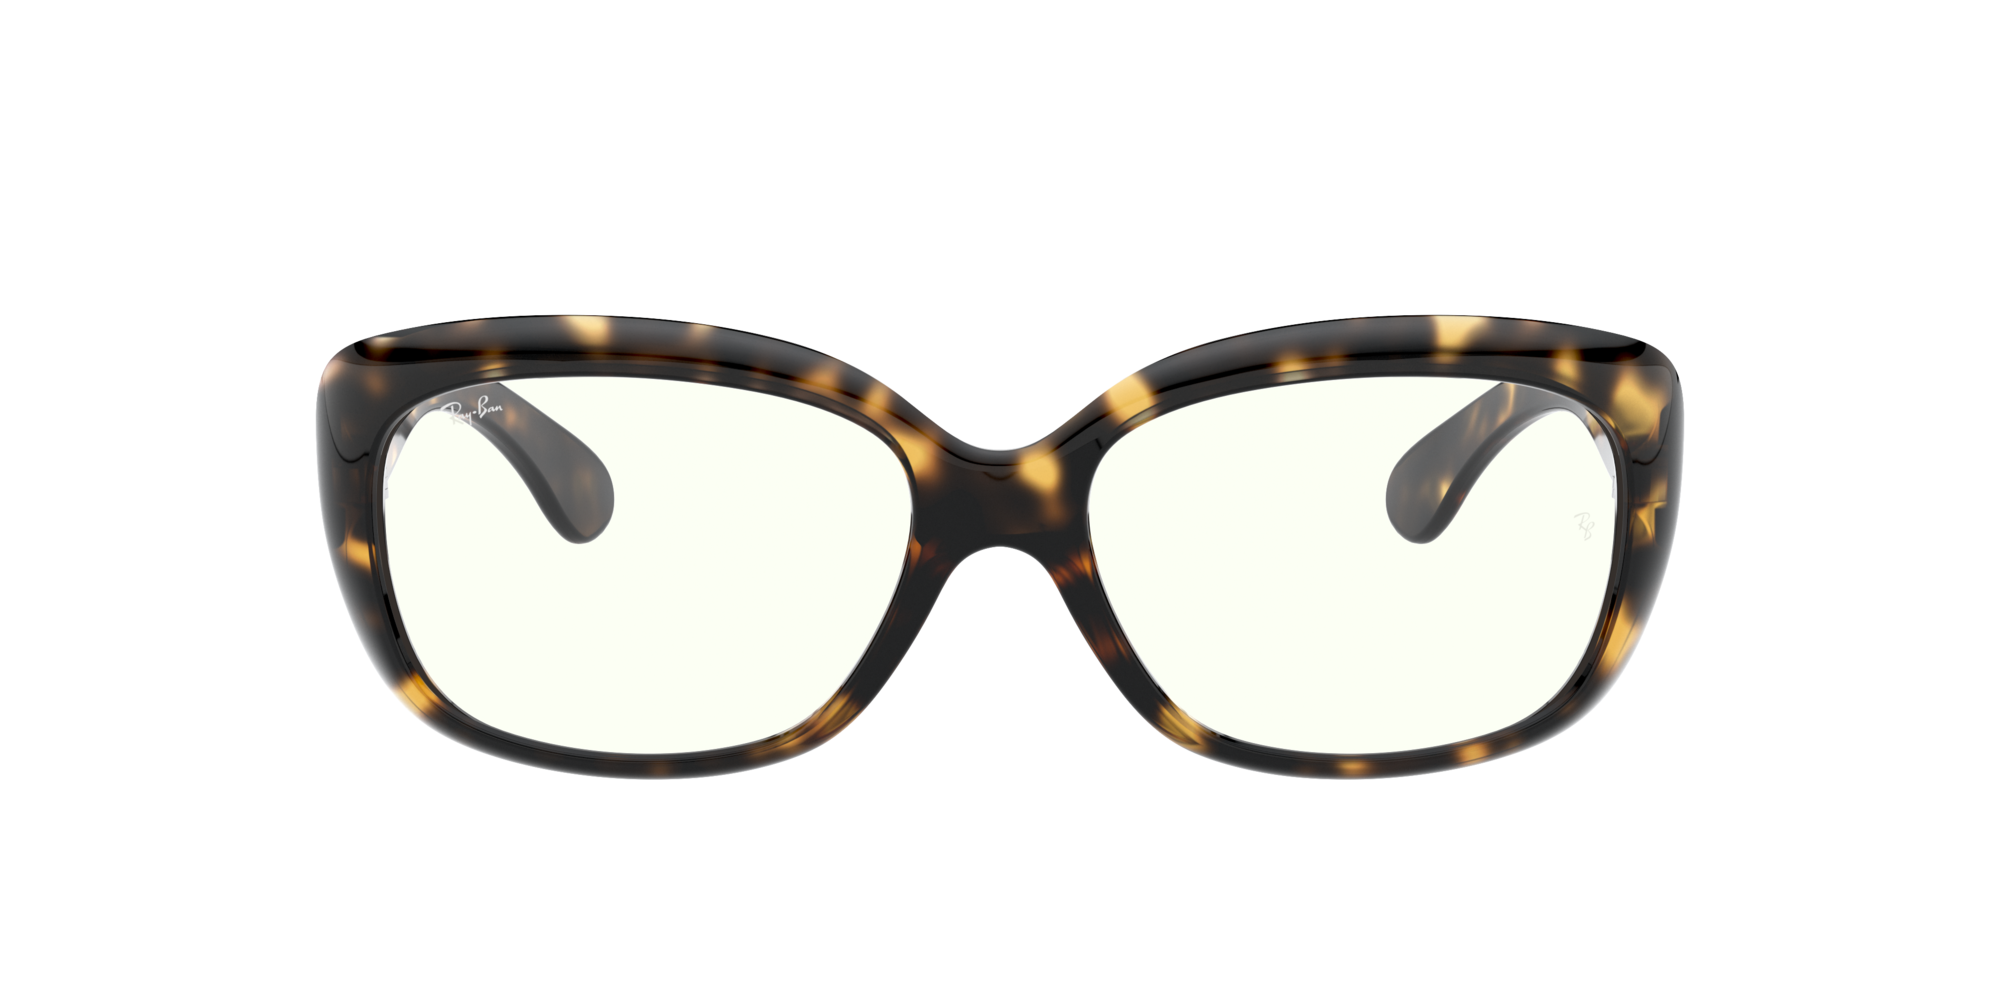 Image for RB4101 58 JACKIE OHH from LensCrafters | Glasses, Prescription Glasses Online, Eyewear